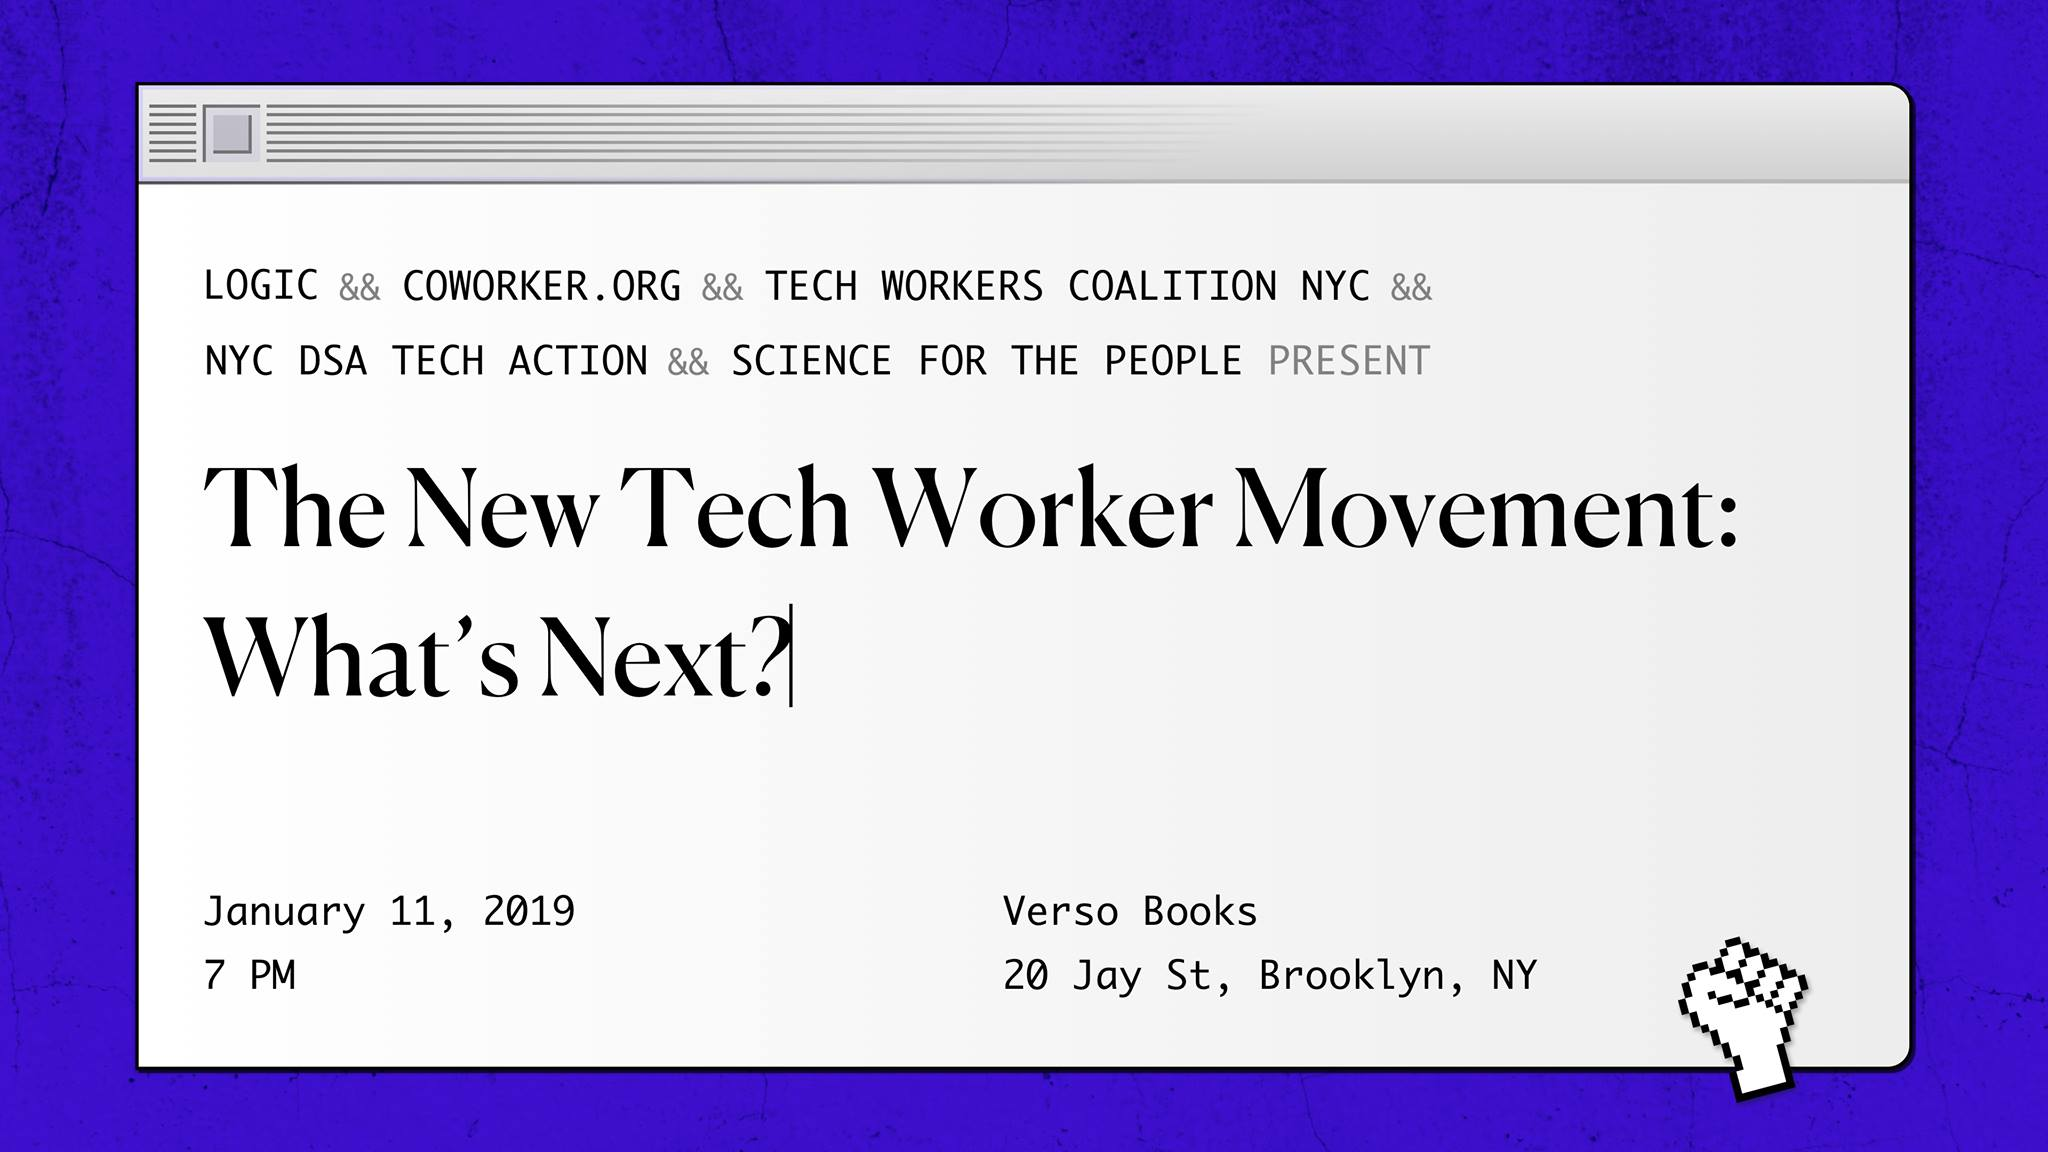 The New Tech Worker Movement